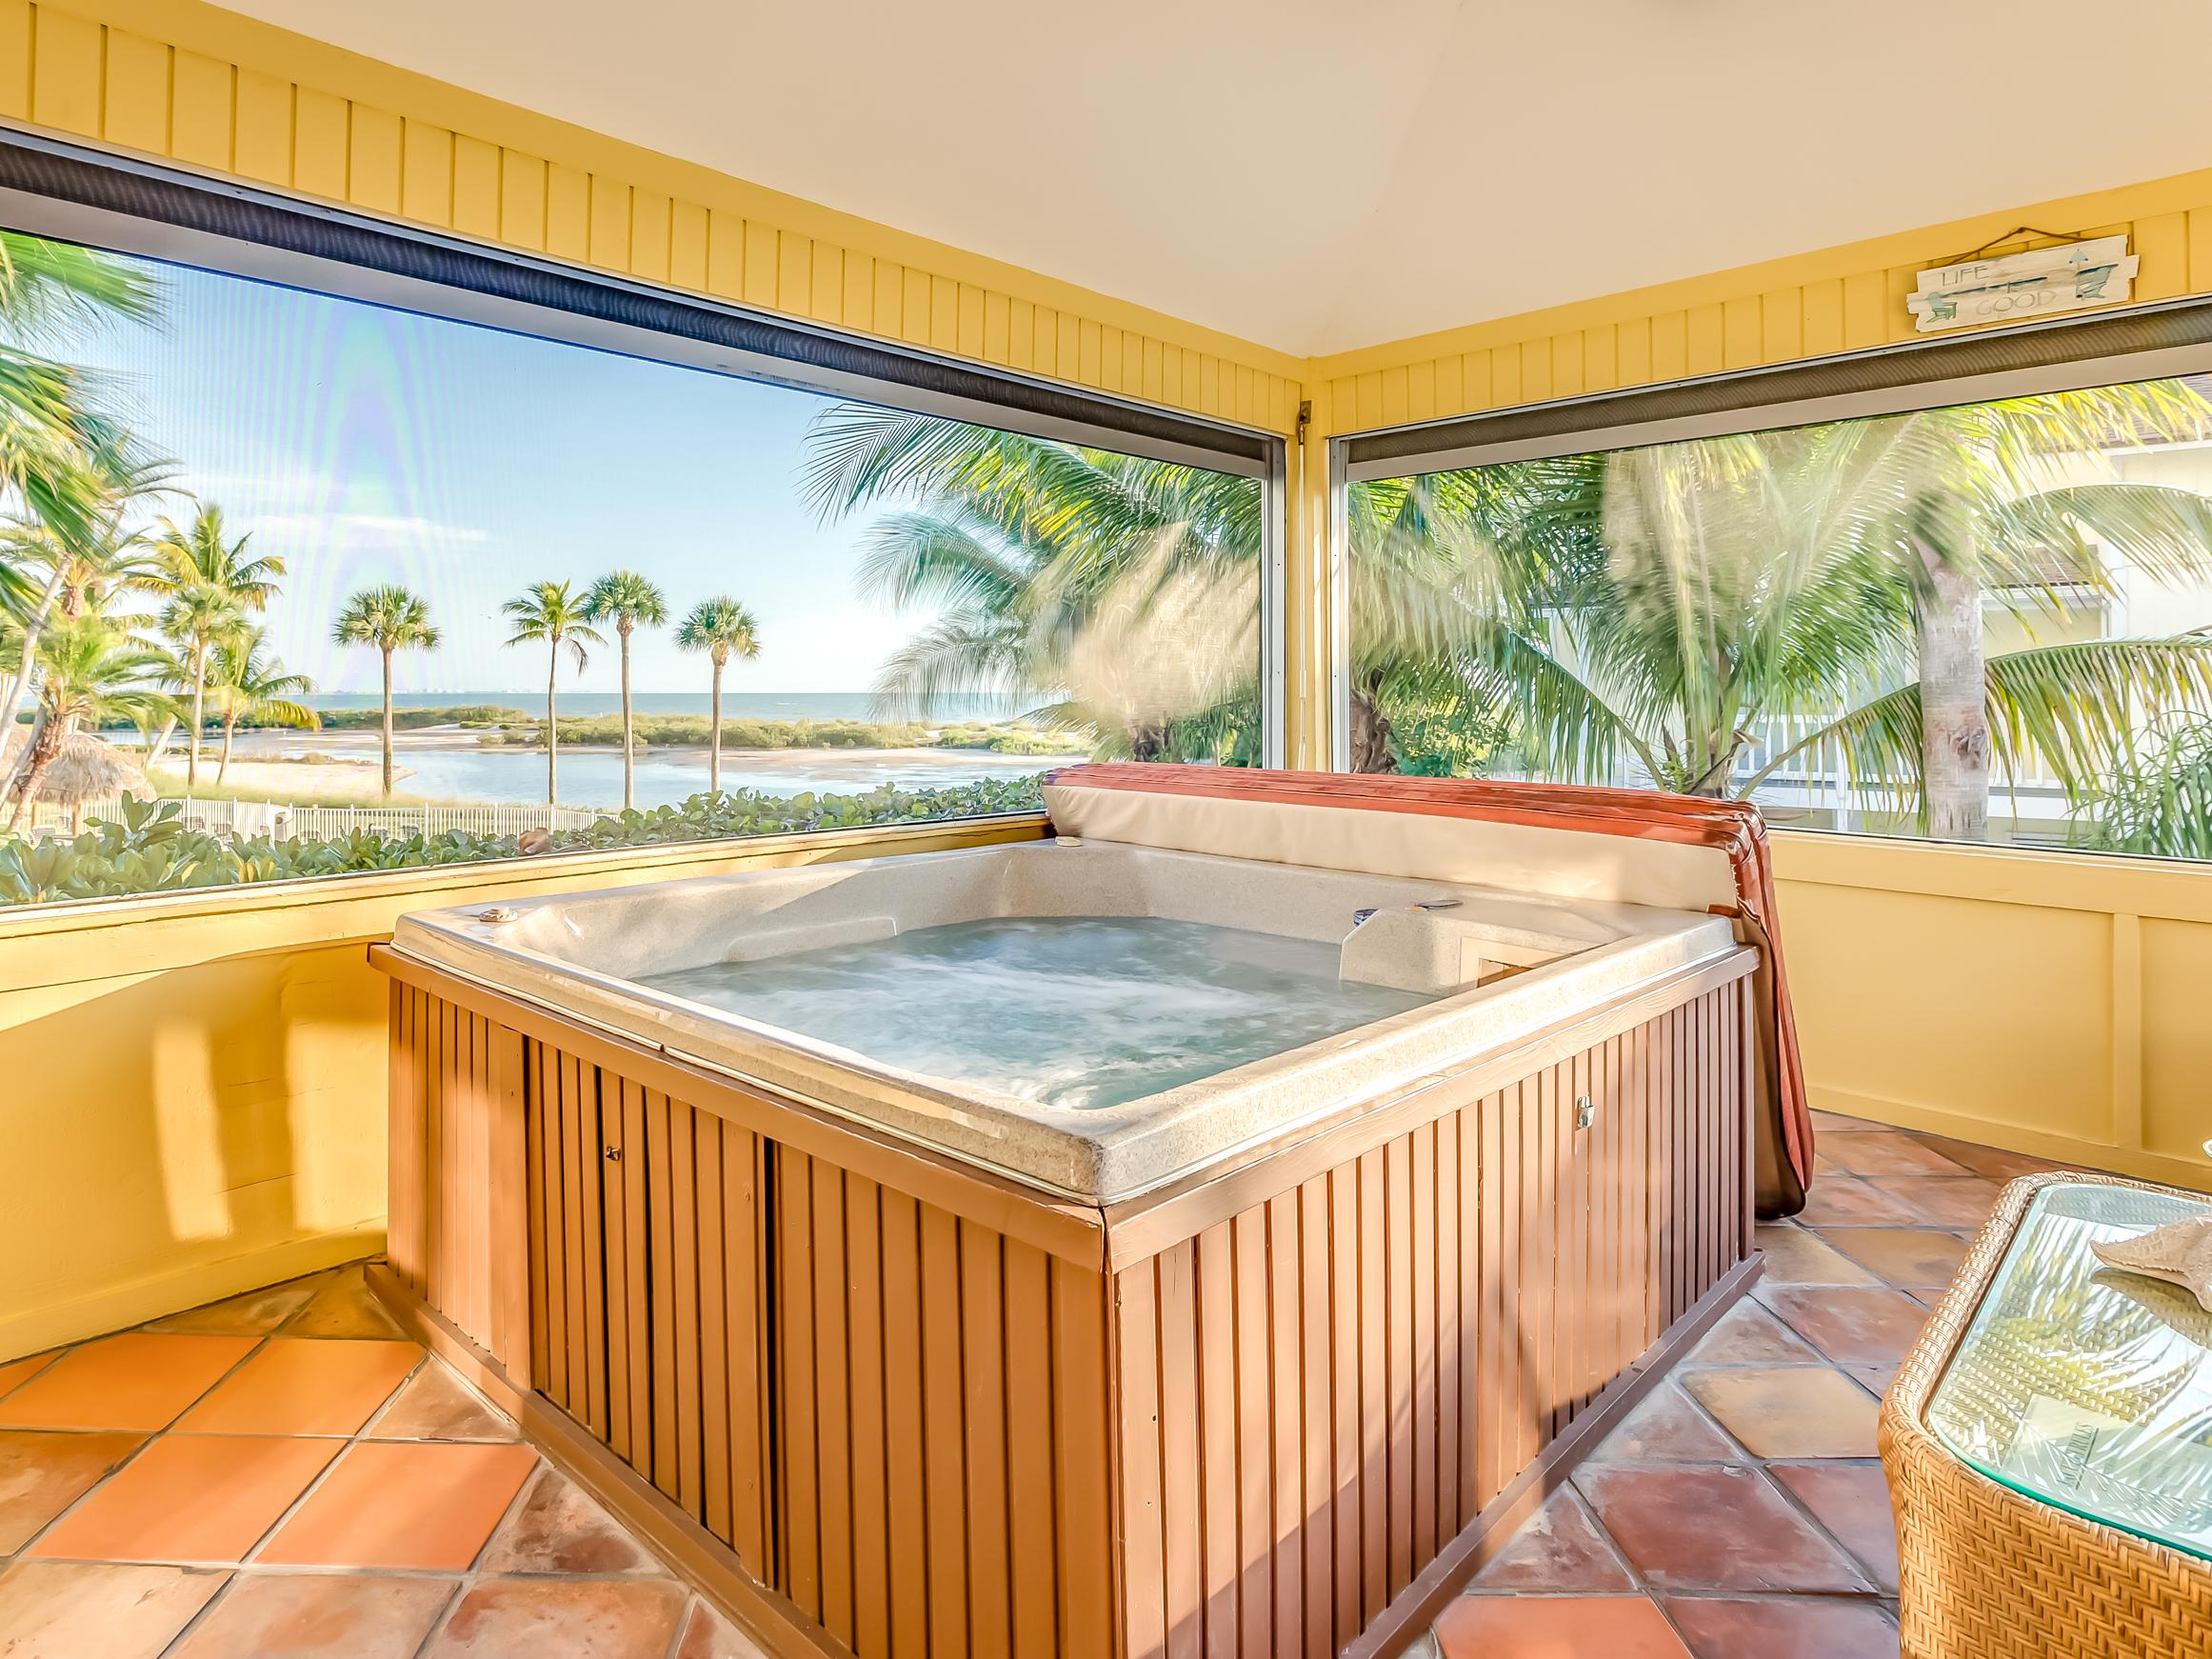 The screened lanai offers plenty of seating and a hot tub with views of the estuary.